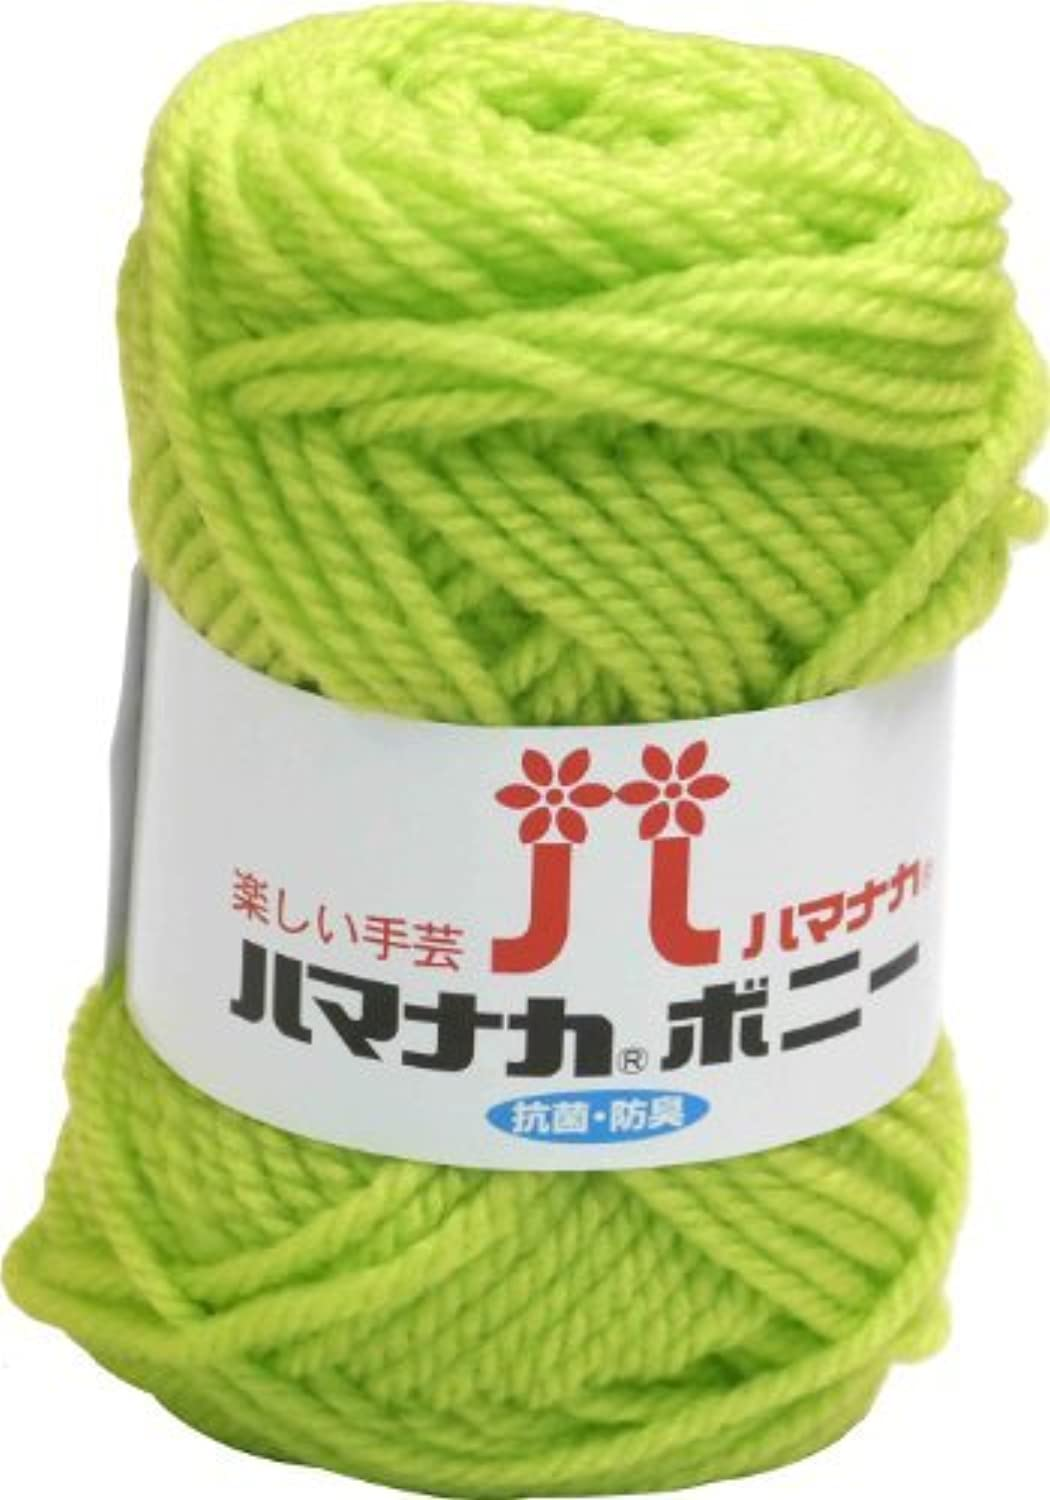 Bonnie Yarn BULKY Col.495 Yellow Green 50 g 60 m 5 Ball Set 4057